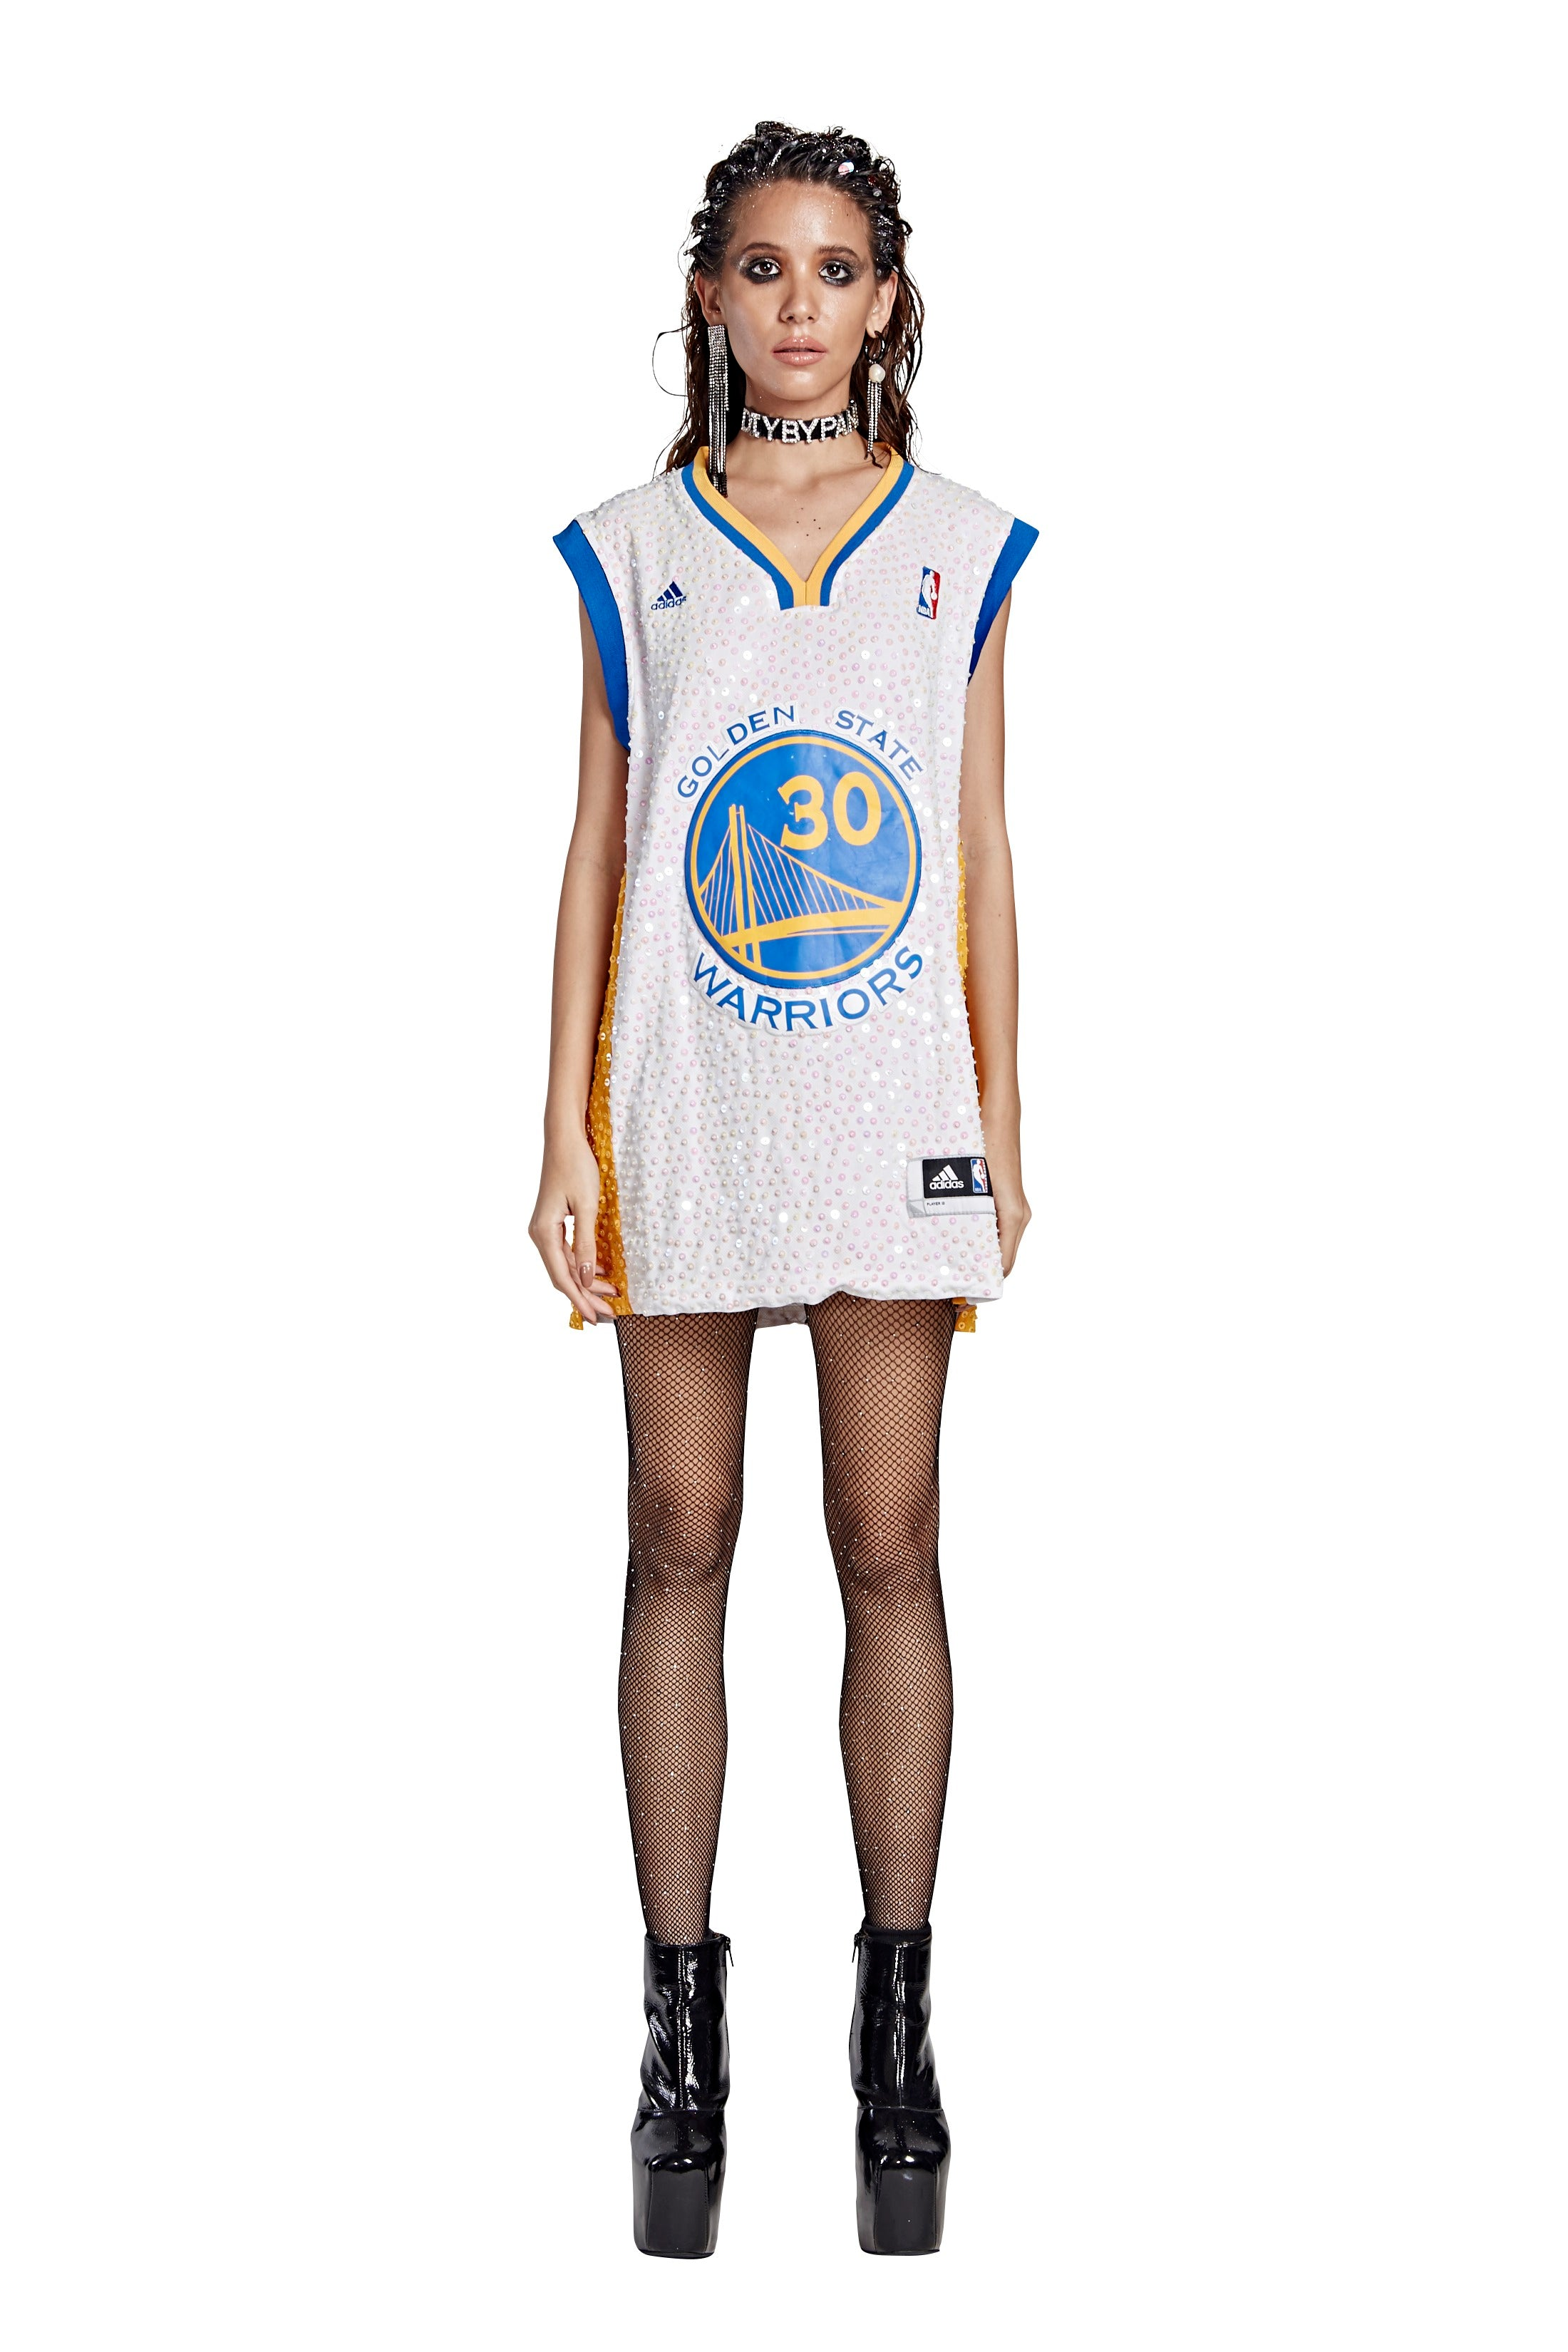 Golden State Warriors '30' Curry Thorn Jersey Mod - White - I LOVE DIY by Panida